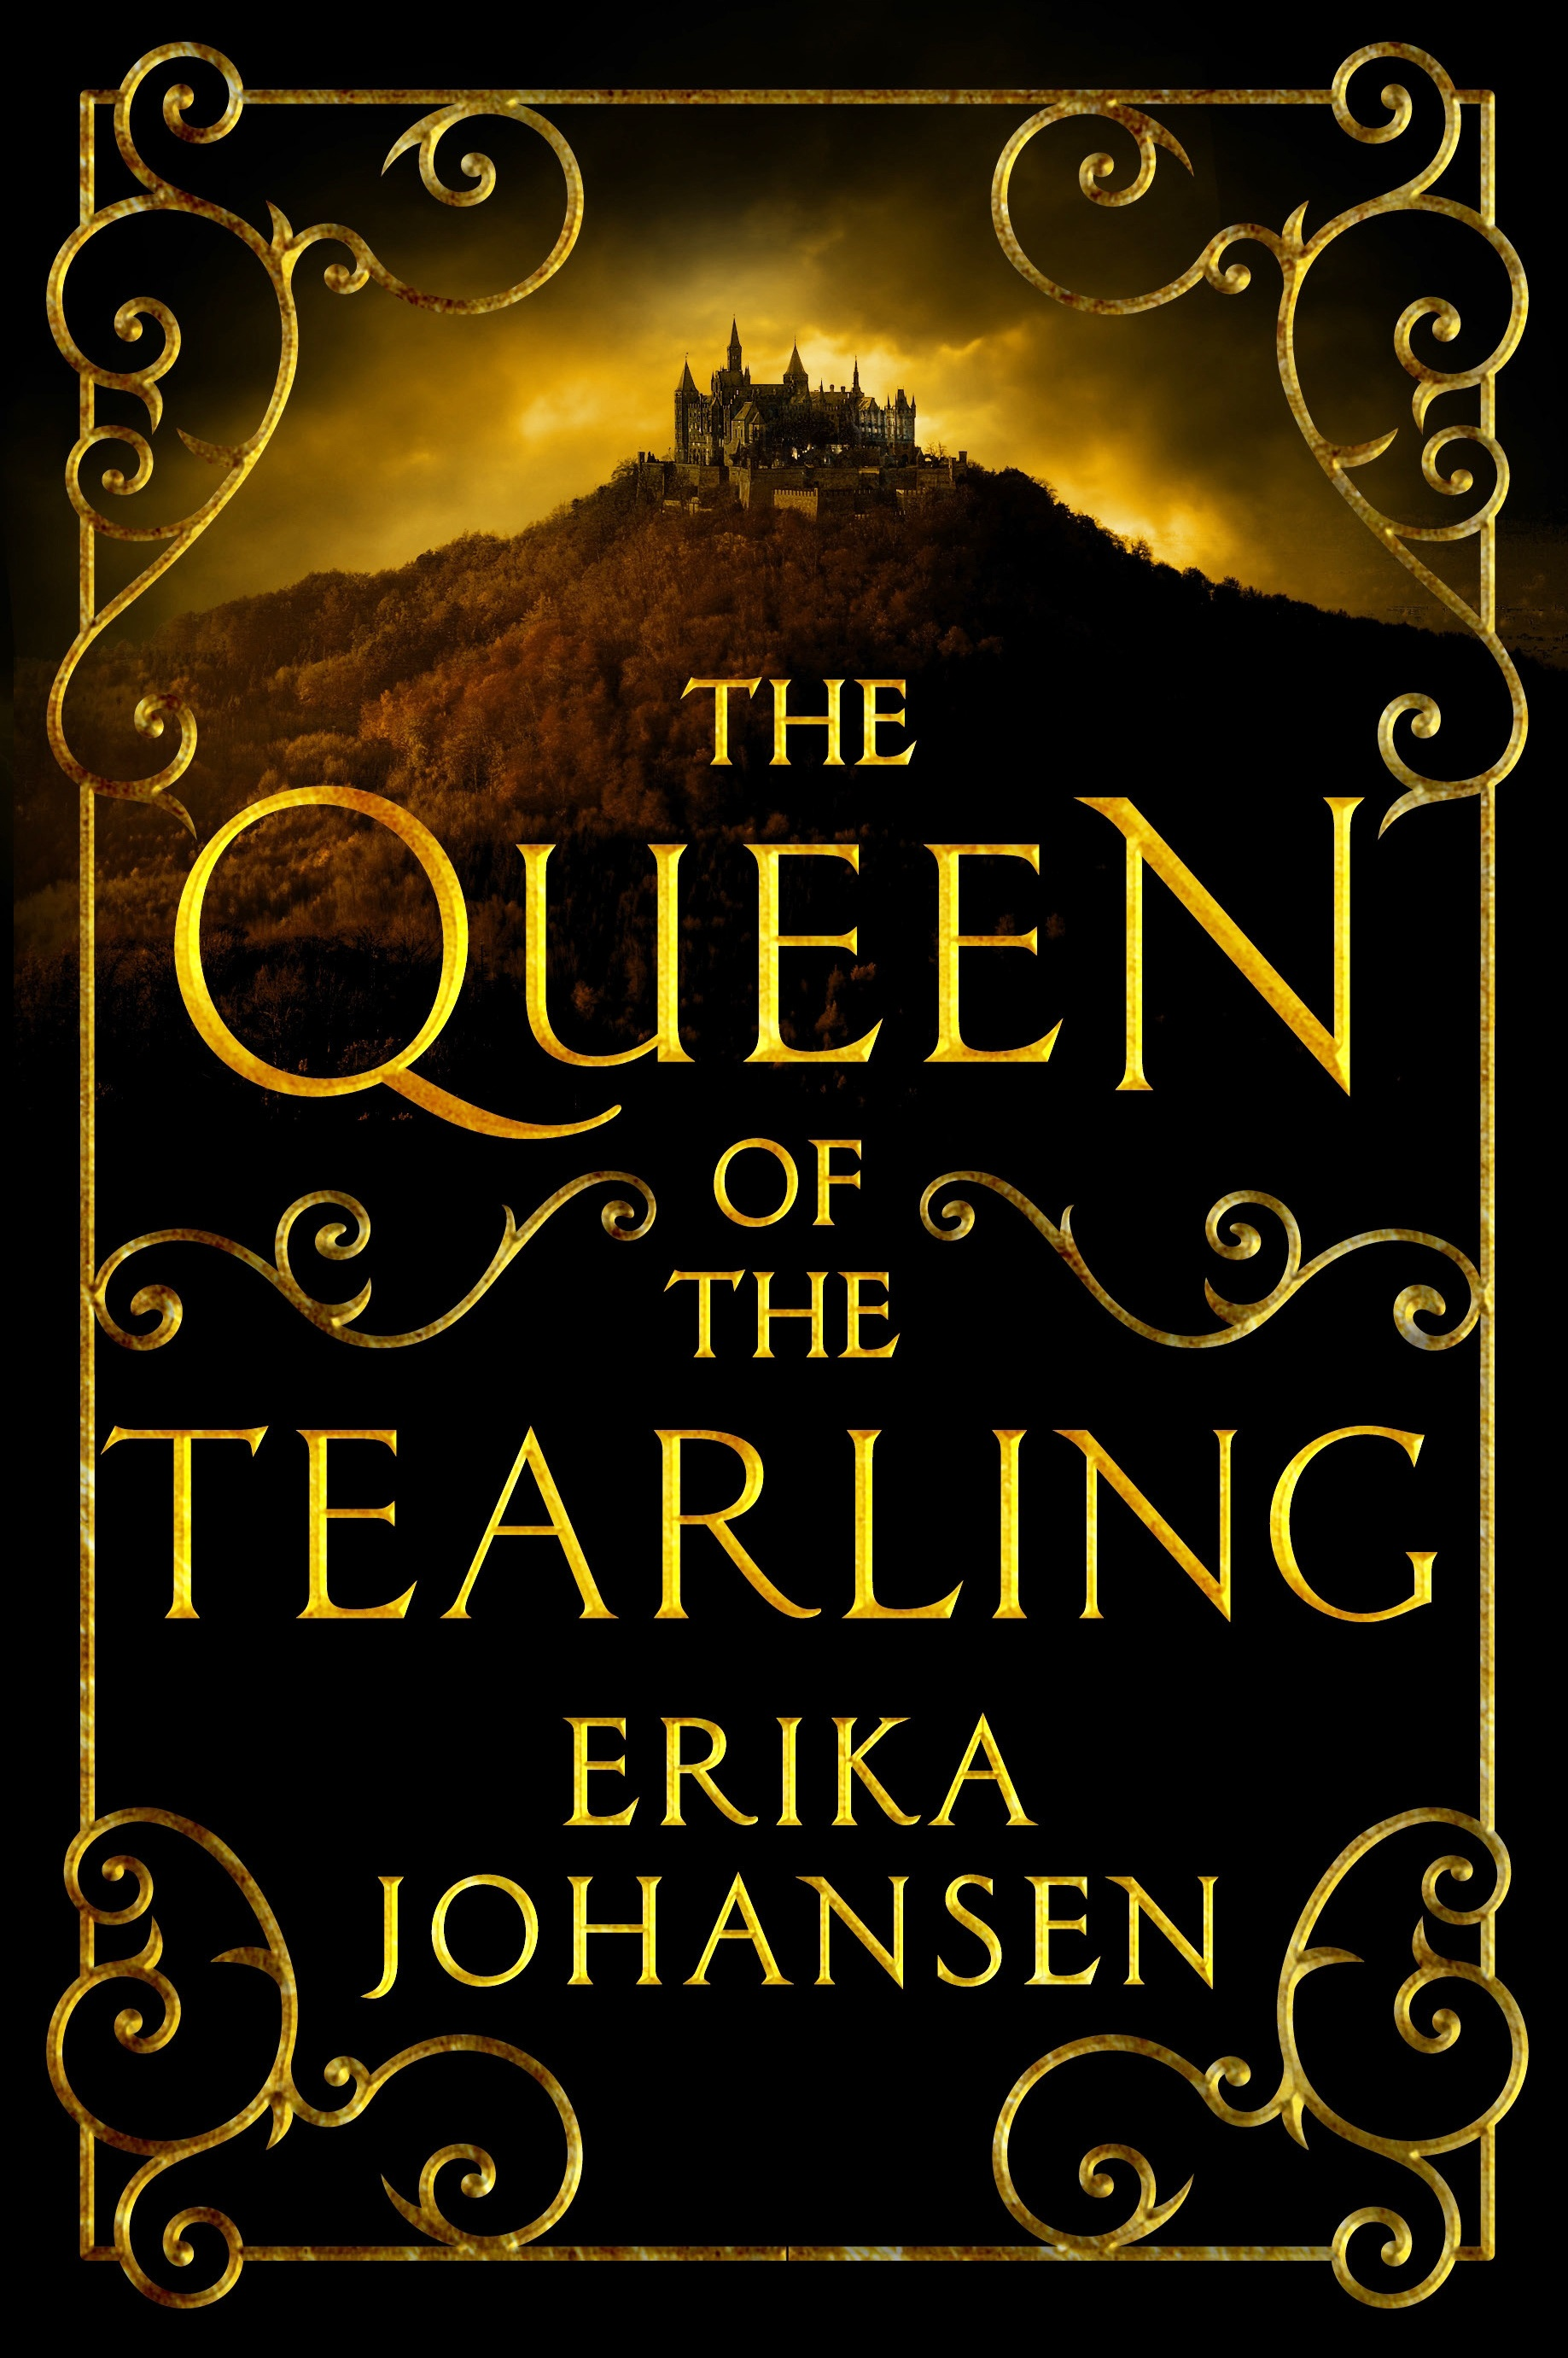 THE QUEEN OF TEARLING Erika Johansen - Multiplayer Edizioni